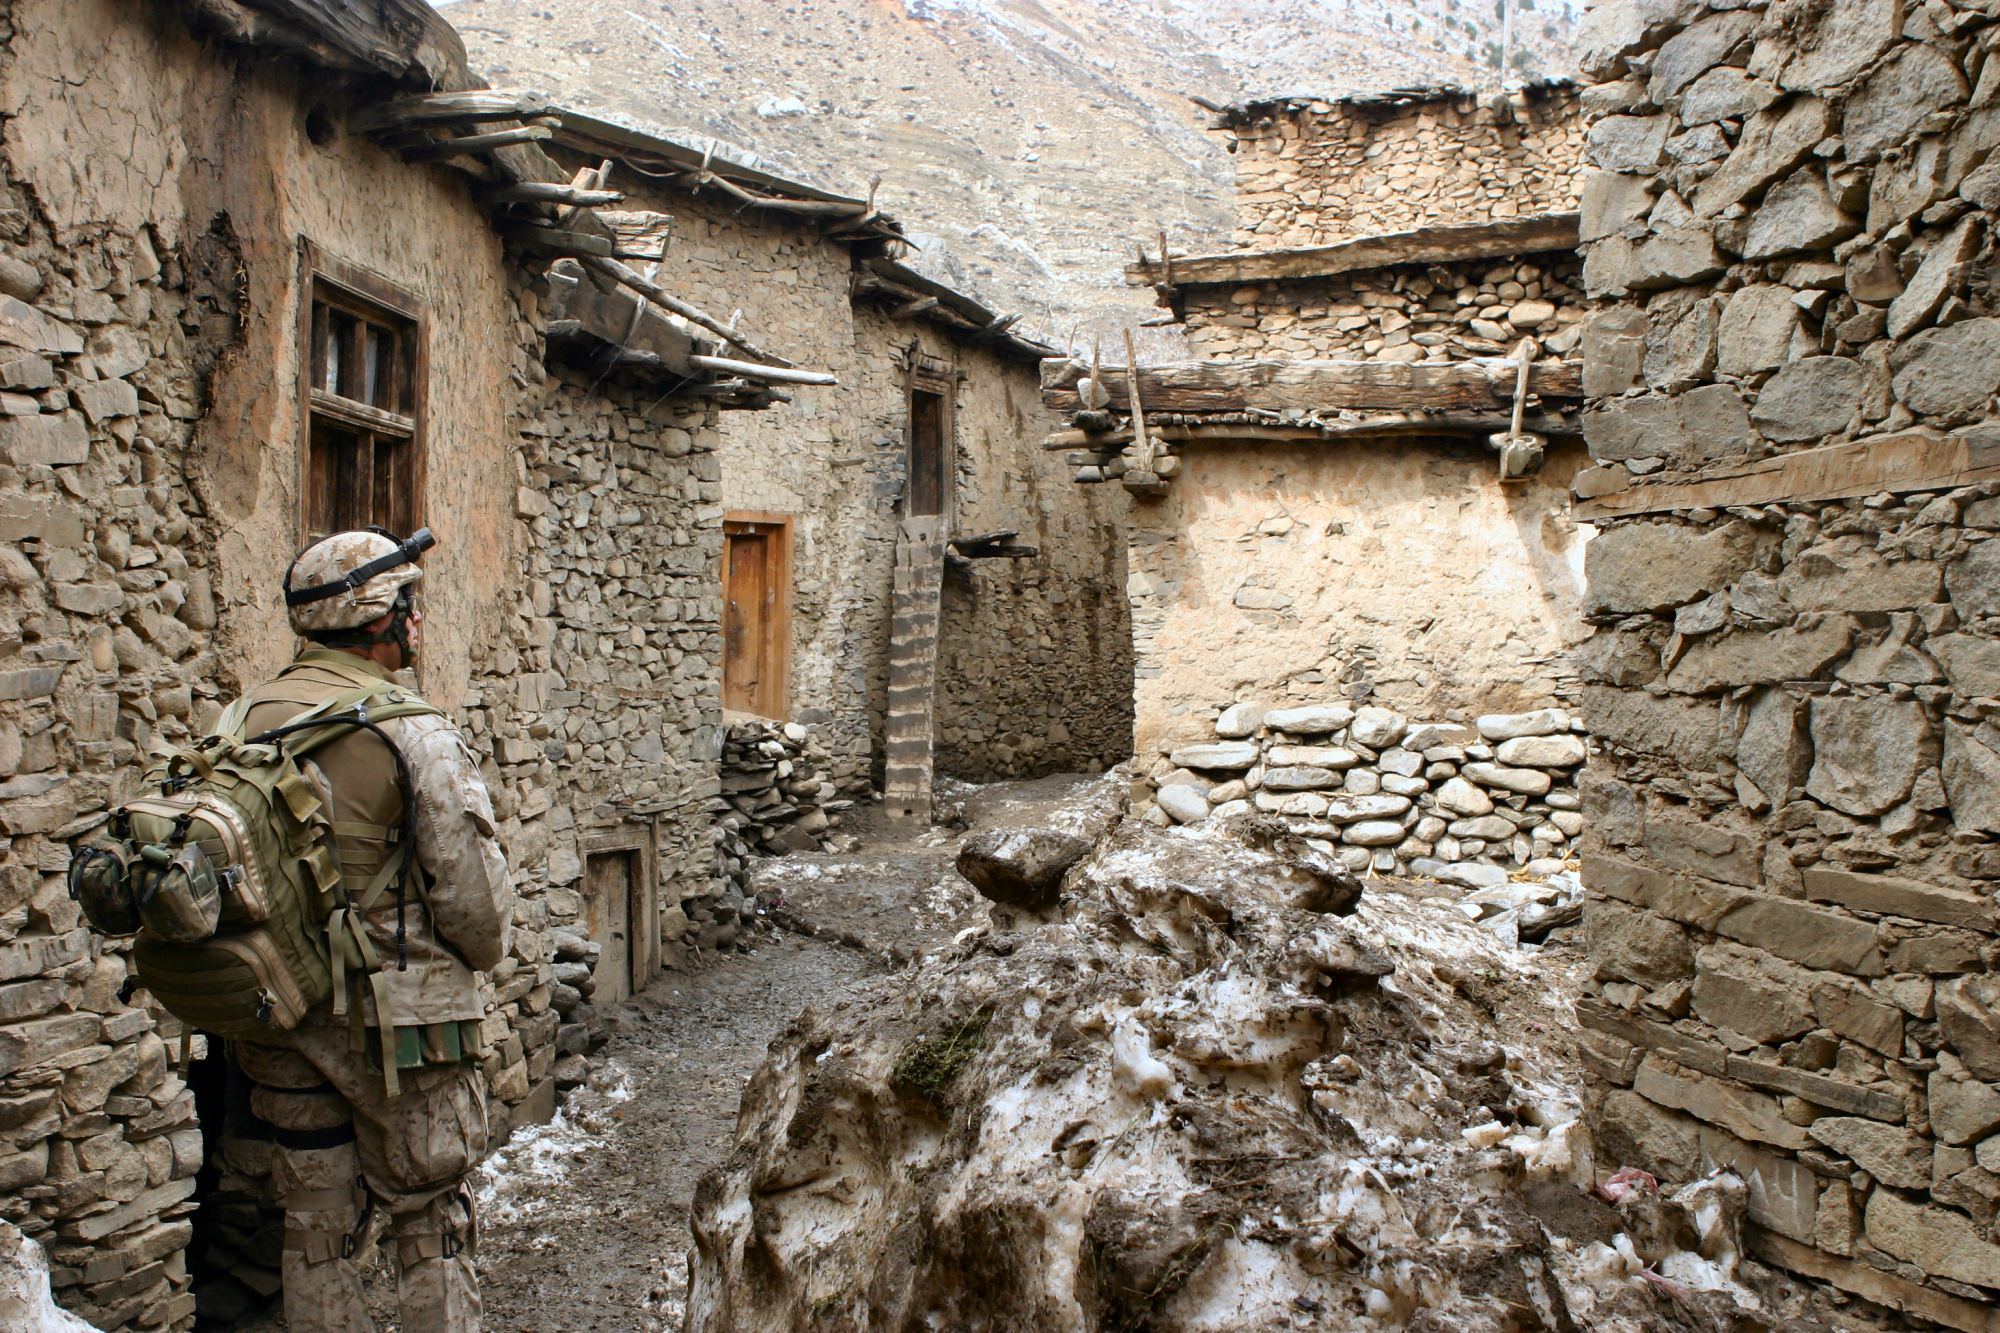 Petty Officer 2nd Class Alonzo Gonzales, a Hospital Corpman with Kilo Company, 3rd Battalion, 3rd Marine Regiment, walks through an alley looking for signs of sickness or disease during Operation Mavericks, an operation that Marines conducted to capture suspected Anti Coaltion Forces in the vicinity of Methar Lam, Afghanistan on March 19, 2005. 3rd Battalion, 3rd Marines is conducting security and stabilization operations in support of Operation Enduring Freedom. (U.S. Marine Corps photo by Corporal James L. Yarboro) Released